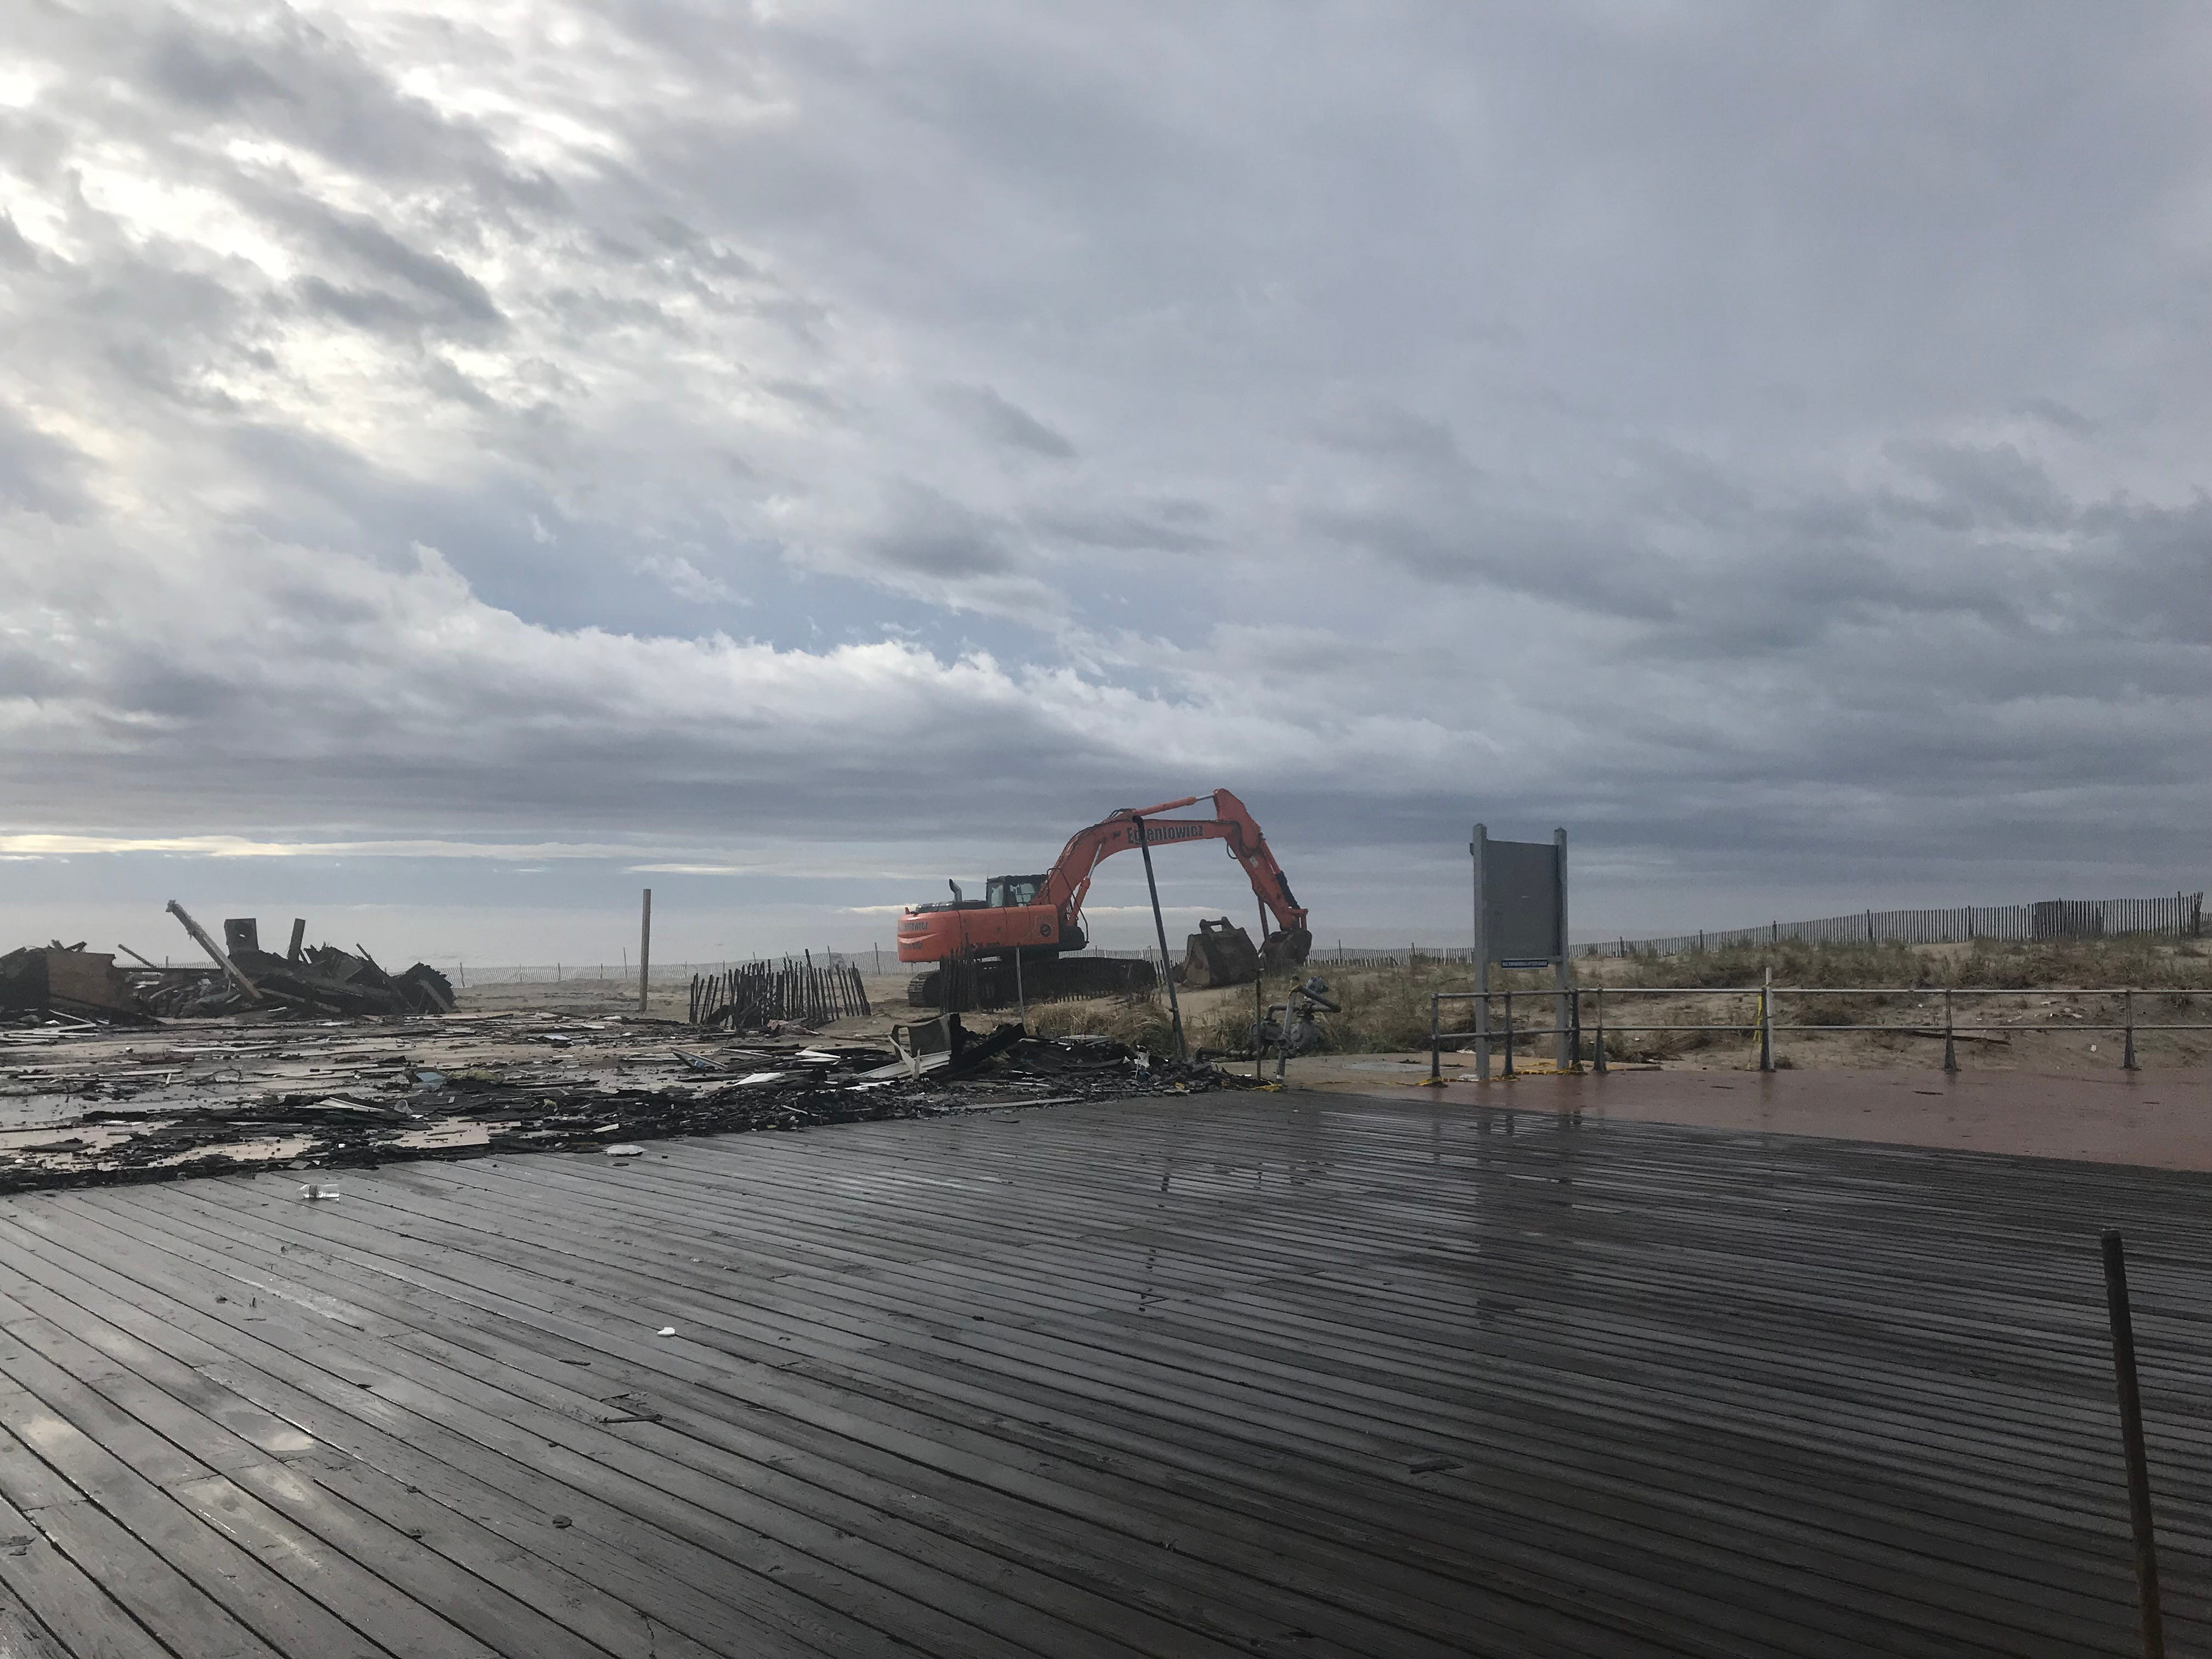 A large construction excavator at the site of the demolished Ocean Grove boardwalk pavilion that was destroyed by fire Saturday, April 13, 2019.